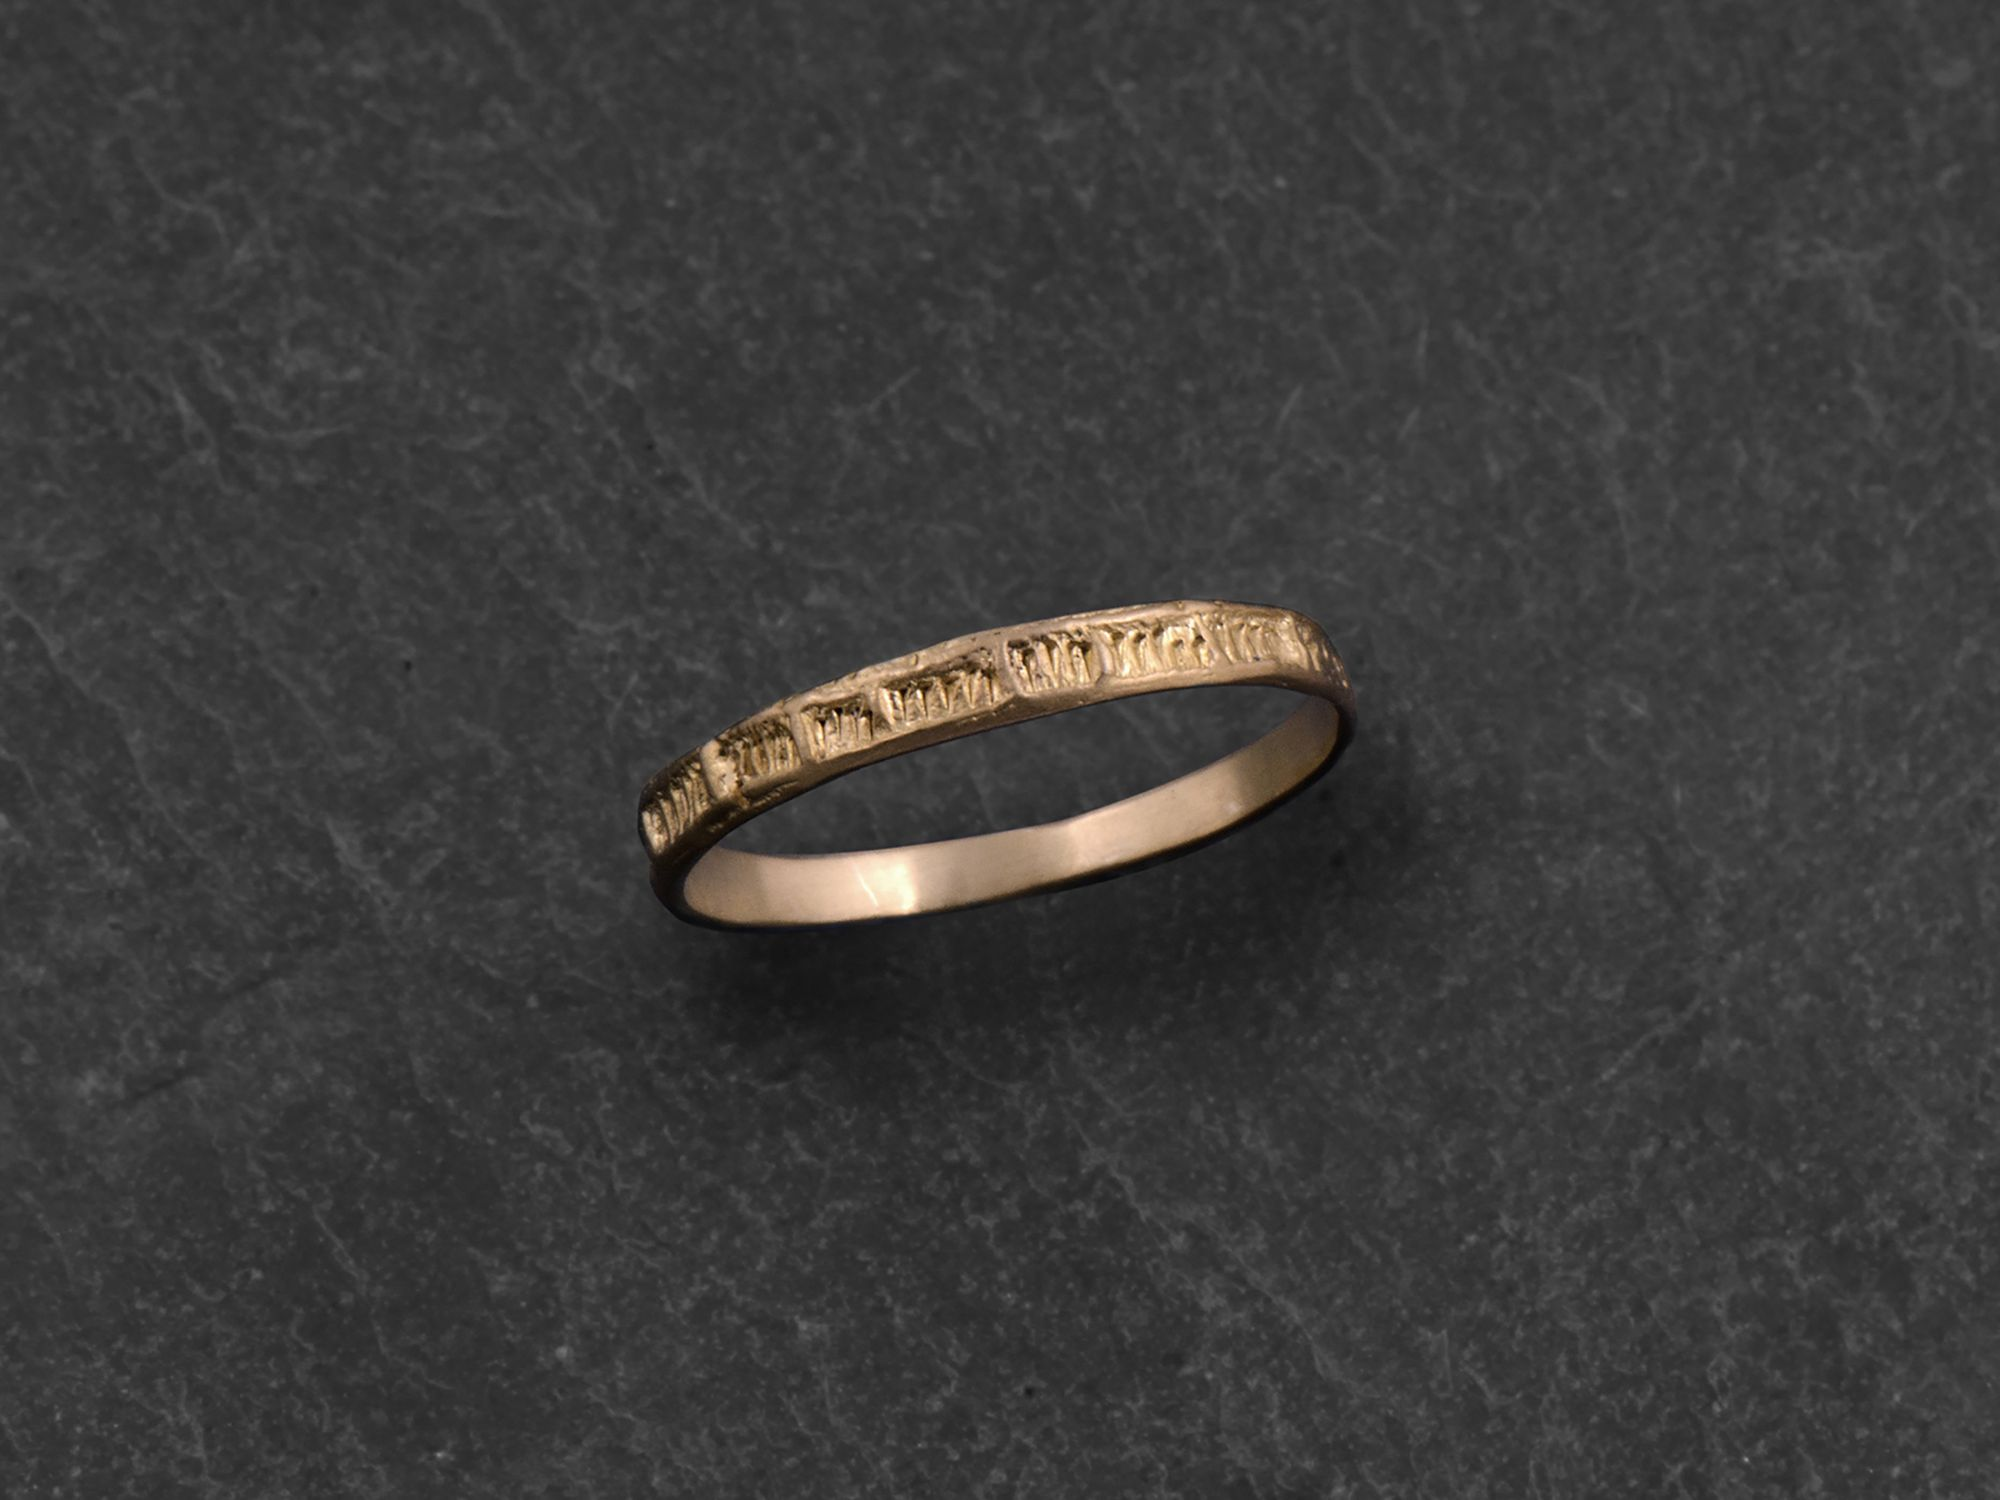 Minos yellow gold ring by Emmanuelle Zysman